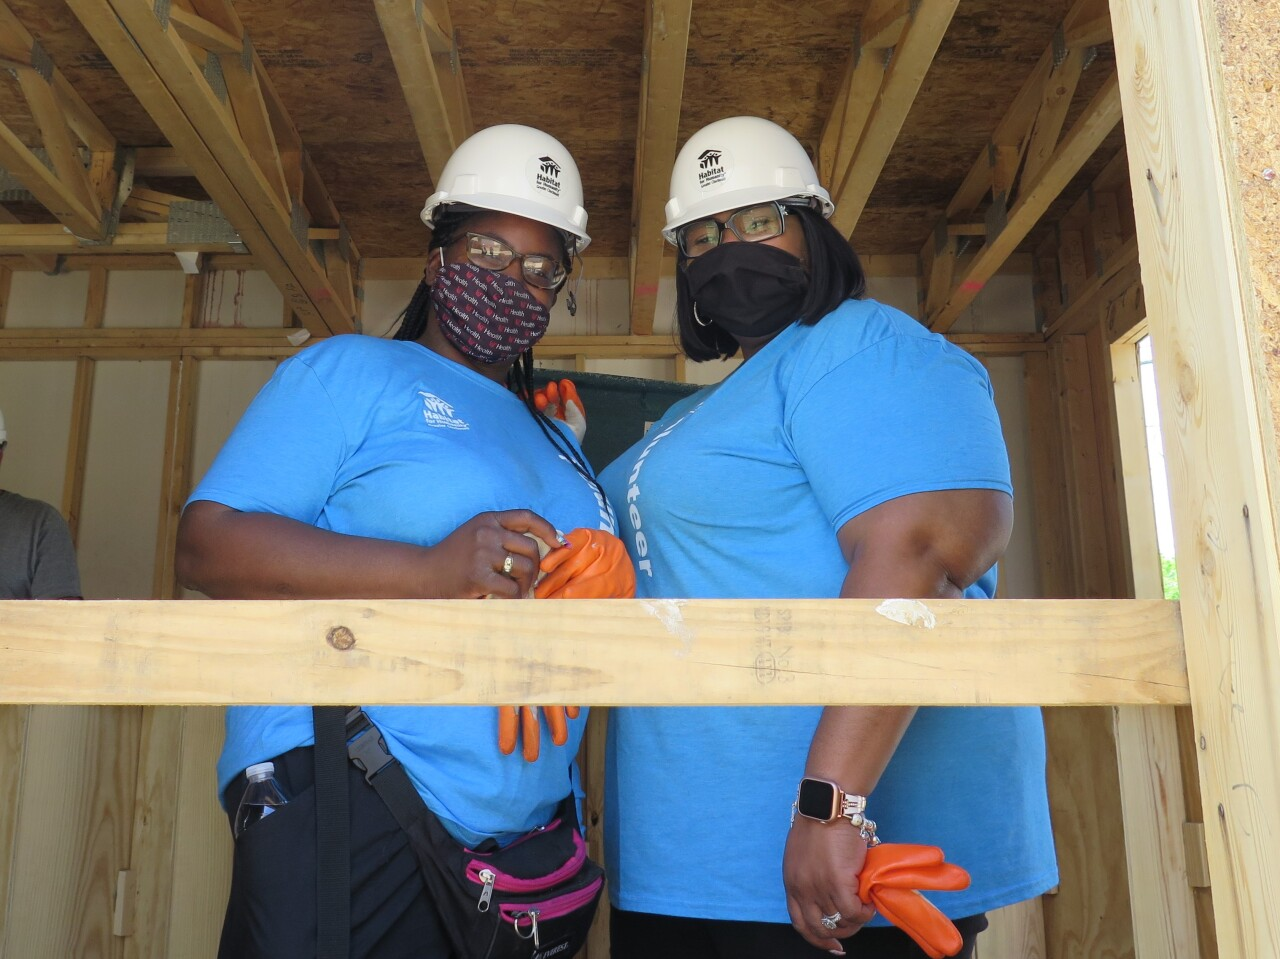 Shelisa Gilmore, left, and Vera Suggs, right, pose with masks pulled above their nose and mouth in this photo as they stand next to each other inside the Bond Hill duplex they are helping to build.